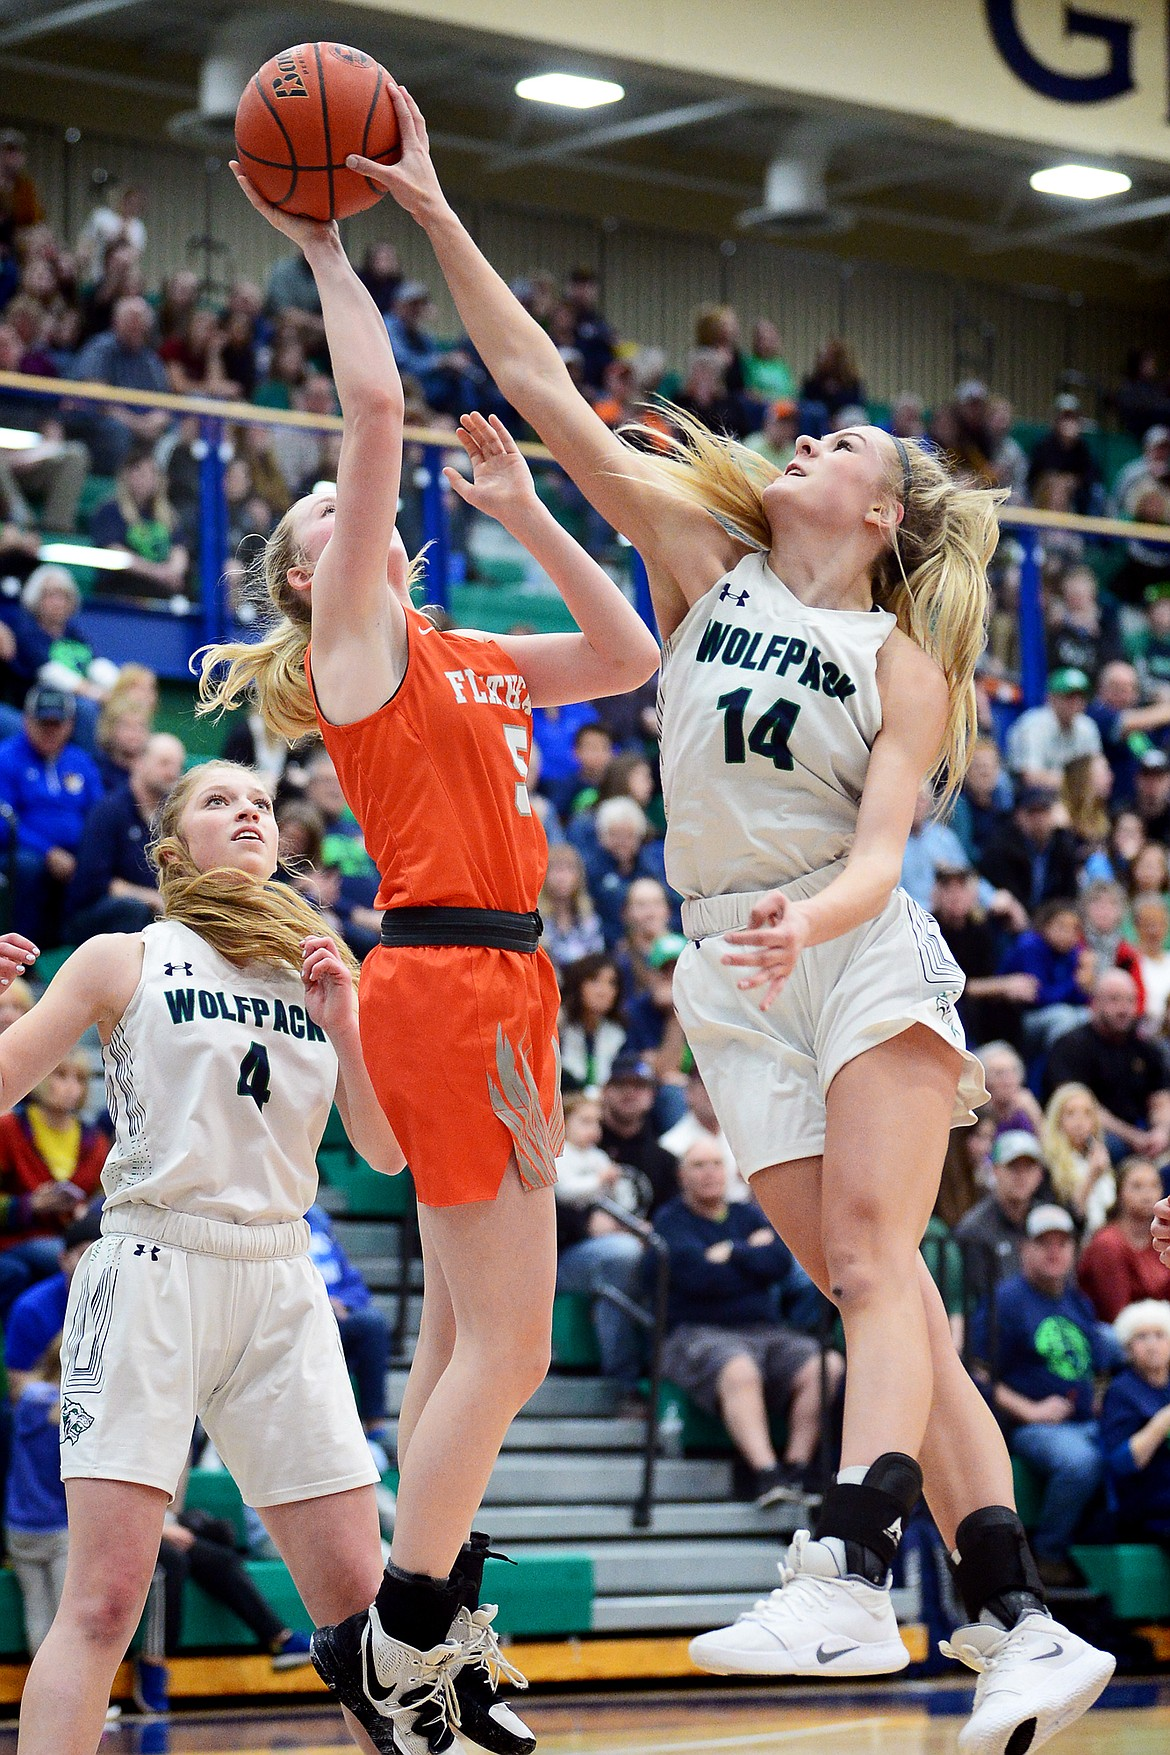 Glacier's Aubrie Rademacher (14) blocks the shot of Flathead's Maddy Moy (5) during a crosstown matchup at Glacier High School on Friday. (Casey Kreider/Daily Inter Lake)